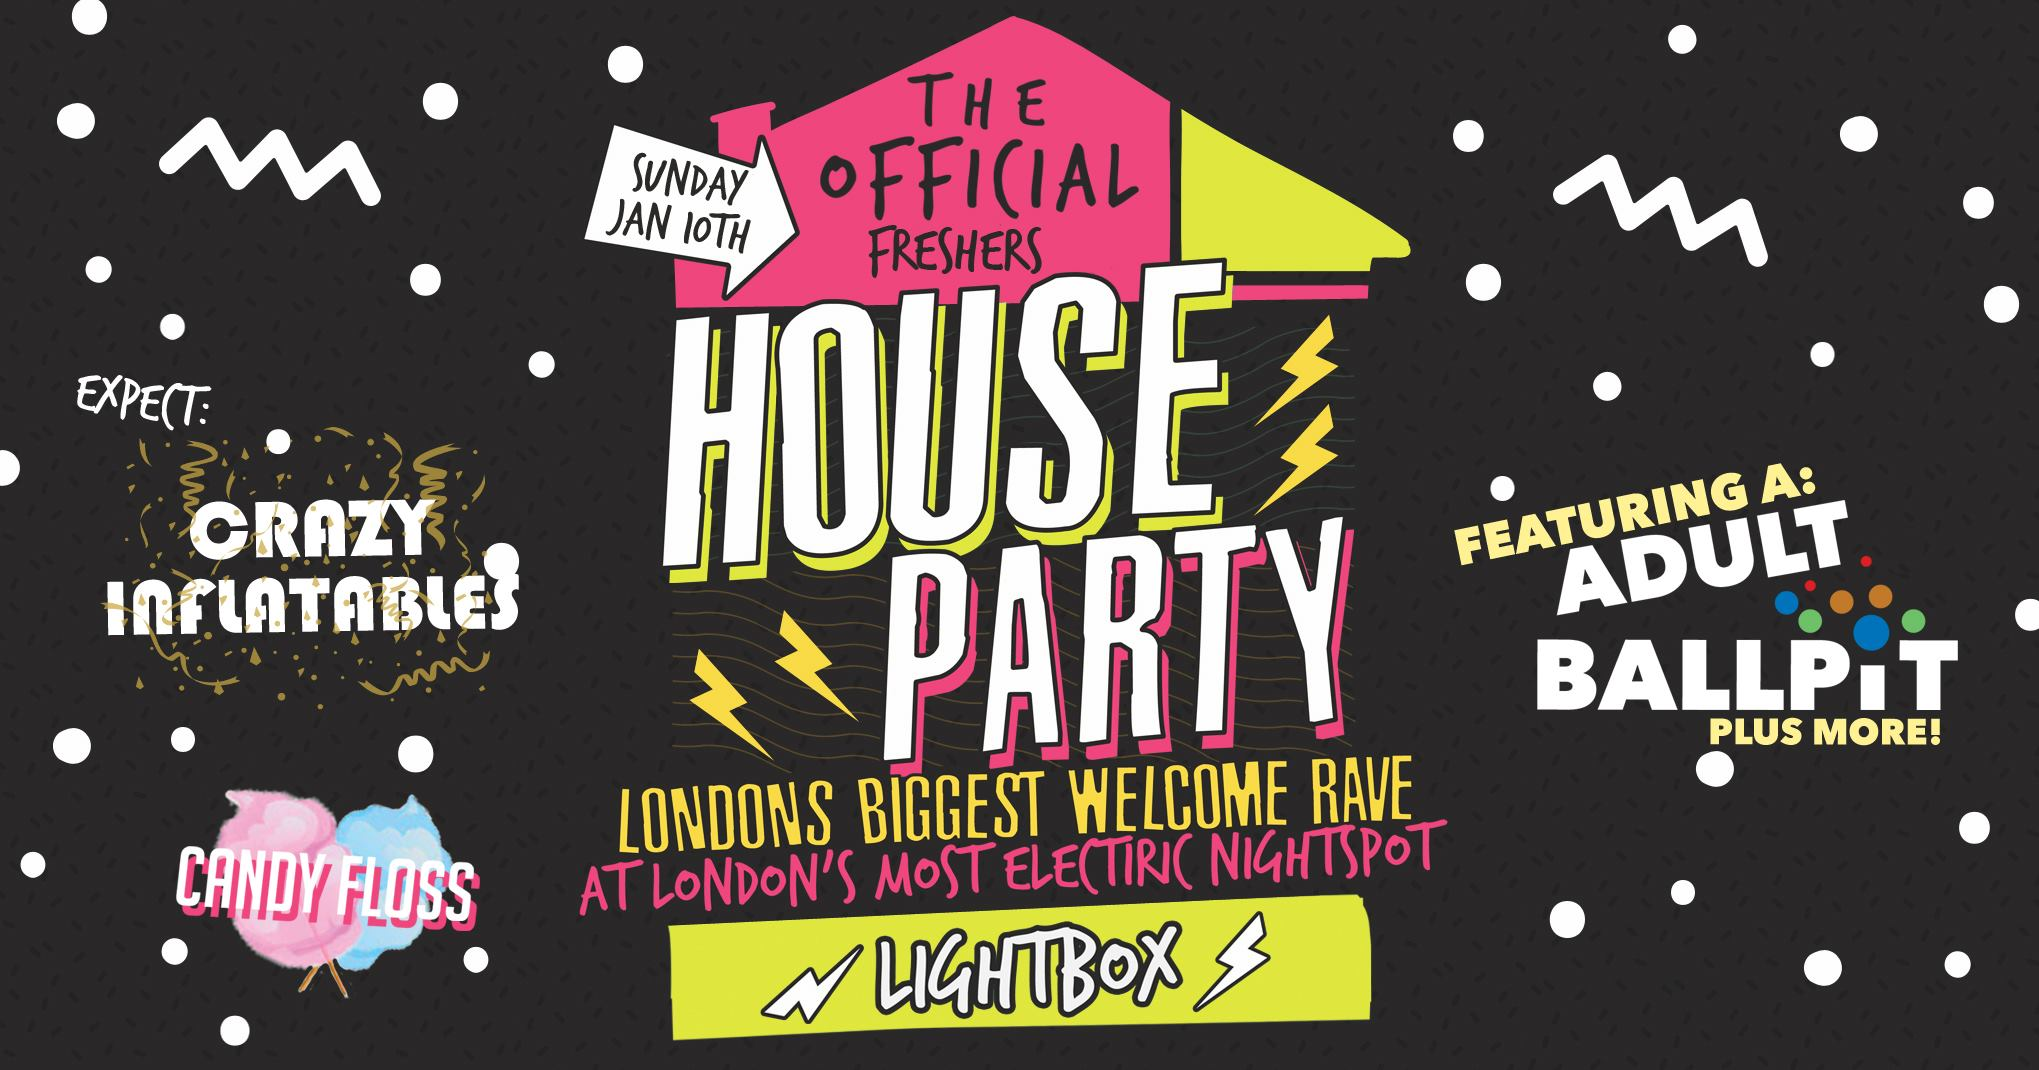 The Official London Freshers House Party - Sold Out Every Year!